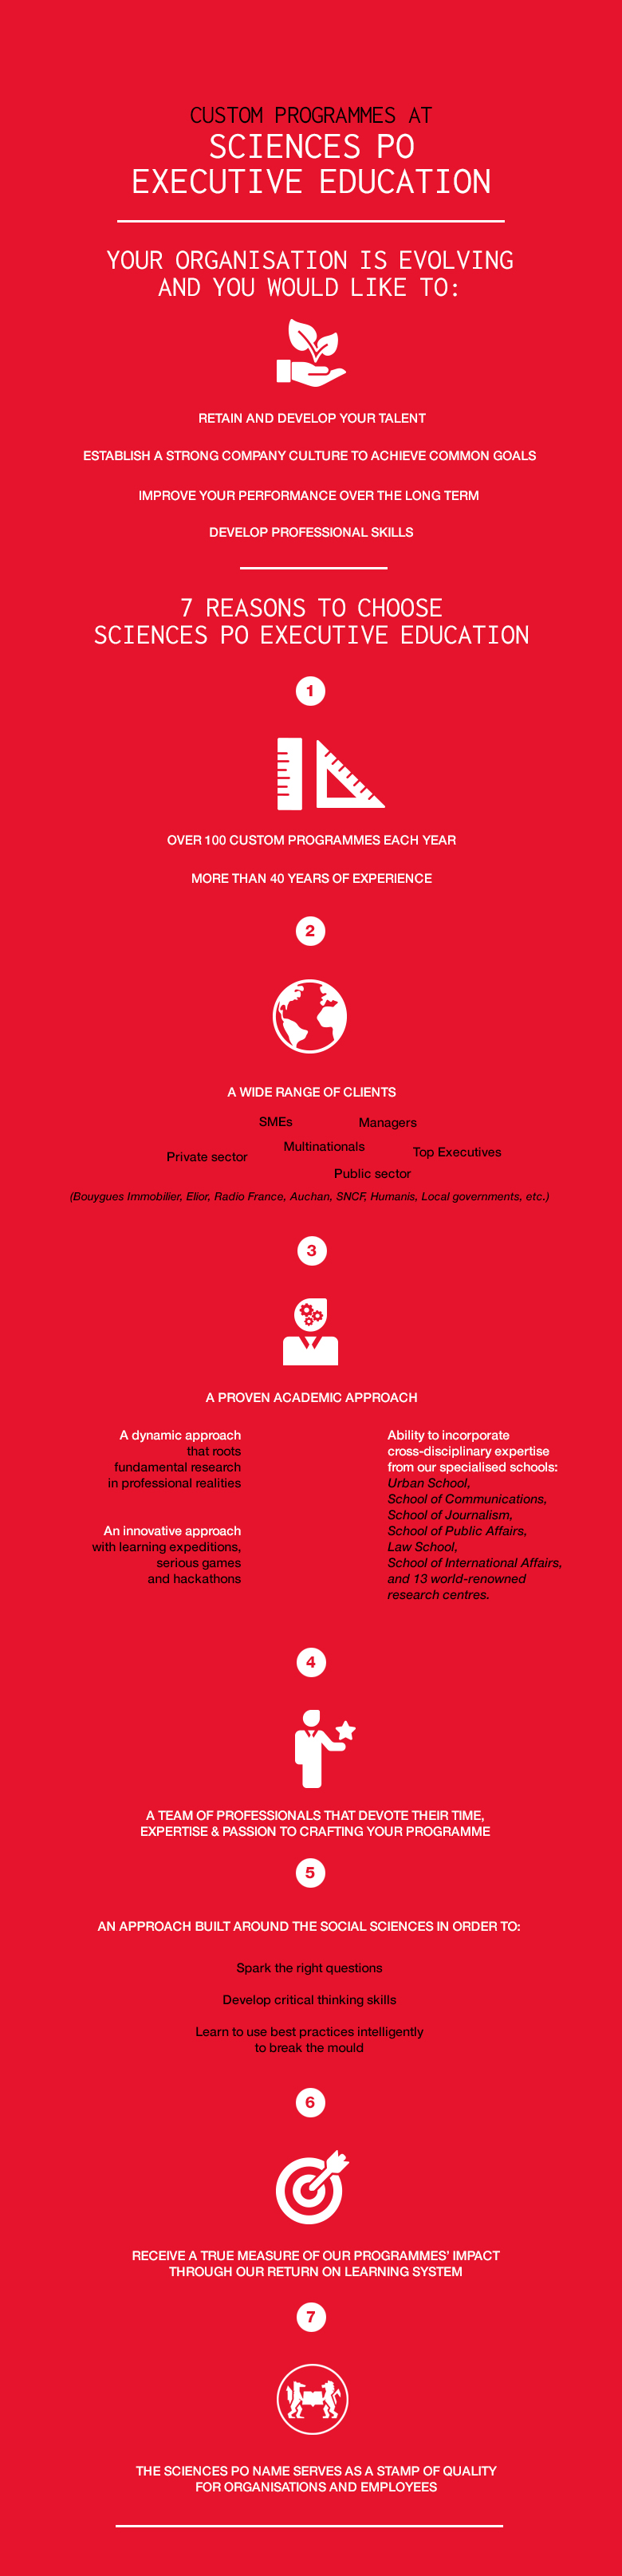 Custom programes at Sciences Po Executive Education [infographic]